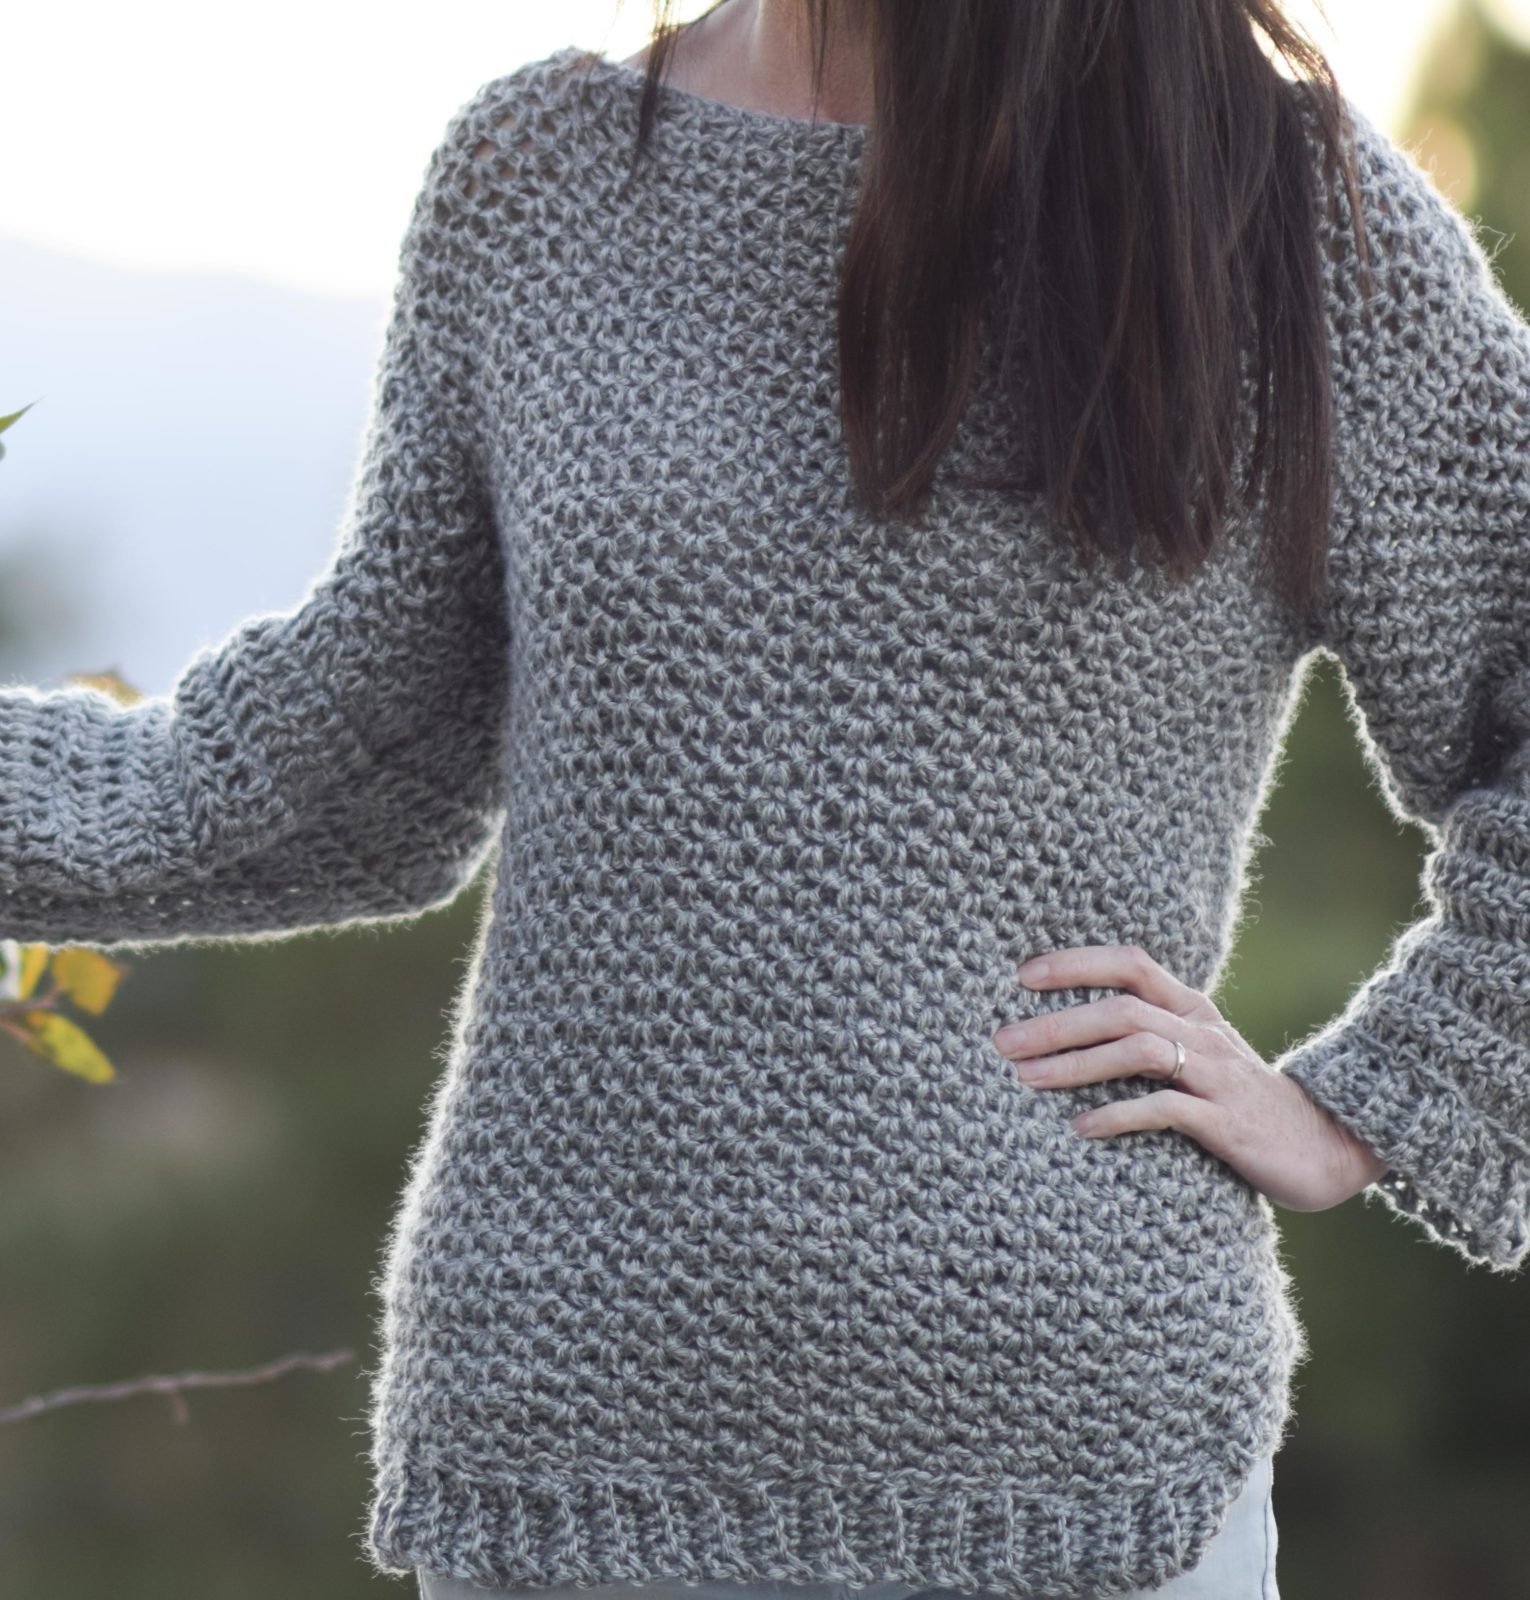 crochet sweater patterns this is a terrific yarn at a great value - i only used xbovtkv